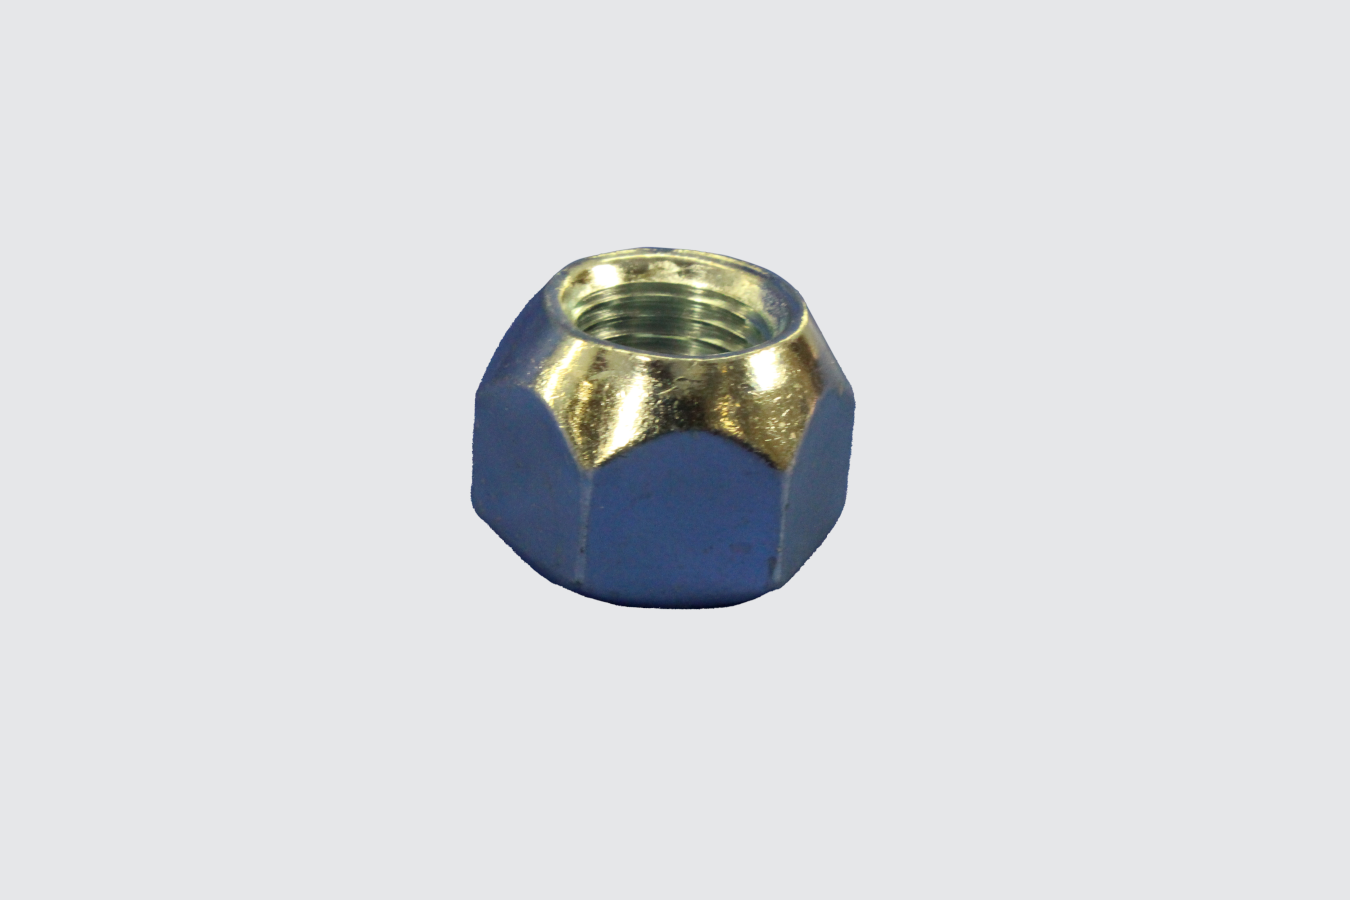 35315274 - NUT, WHEEL 1/2-20 60 DEG CONE